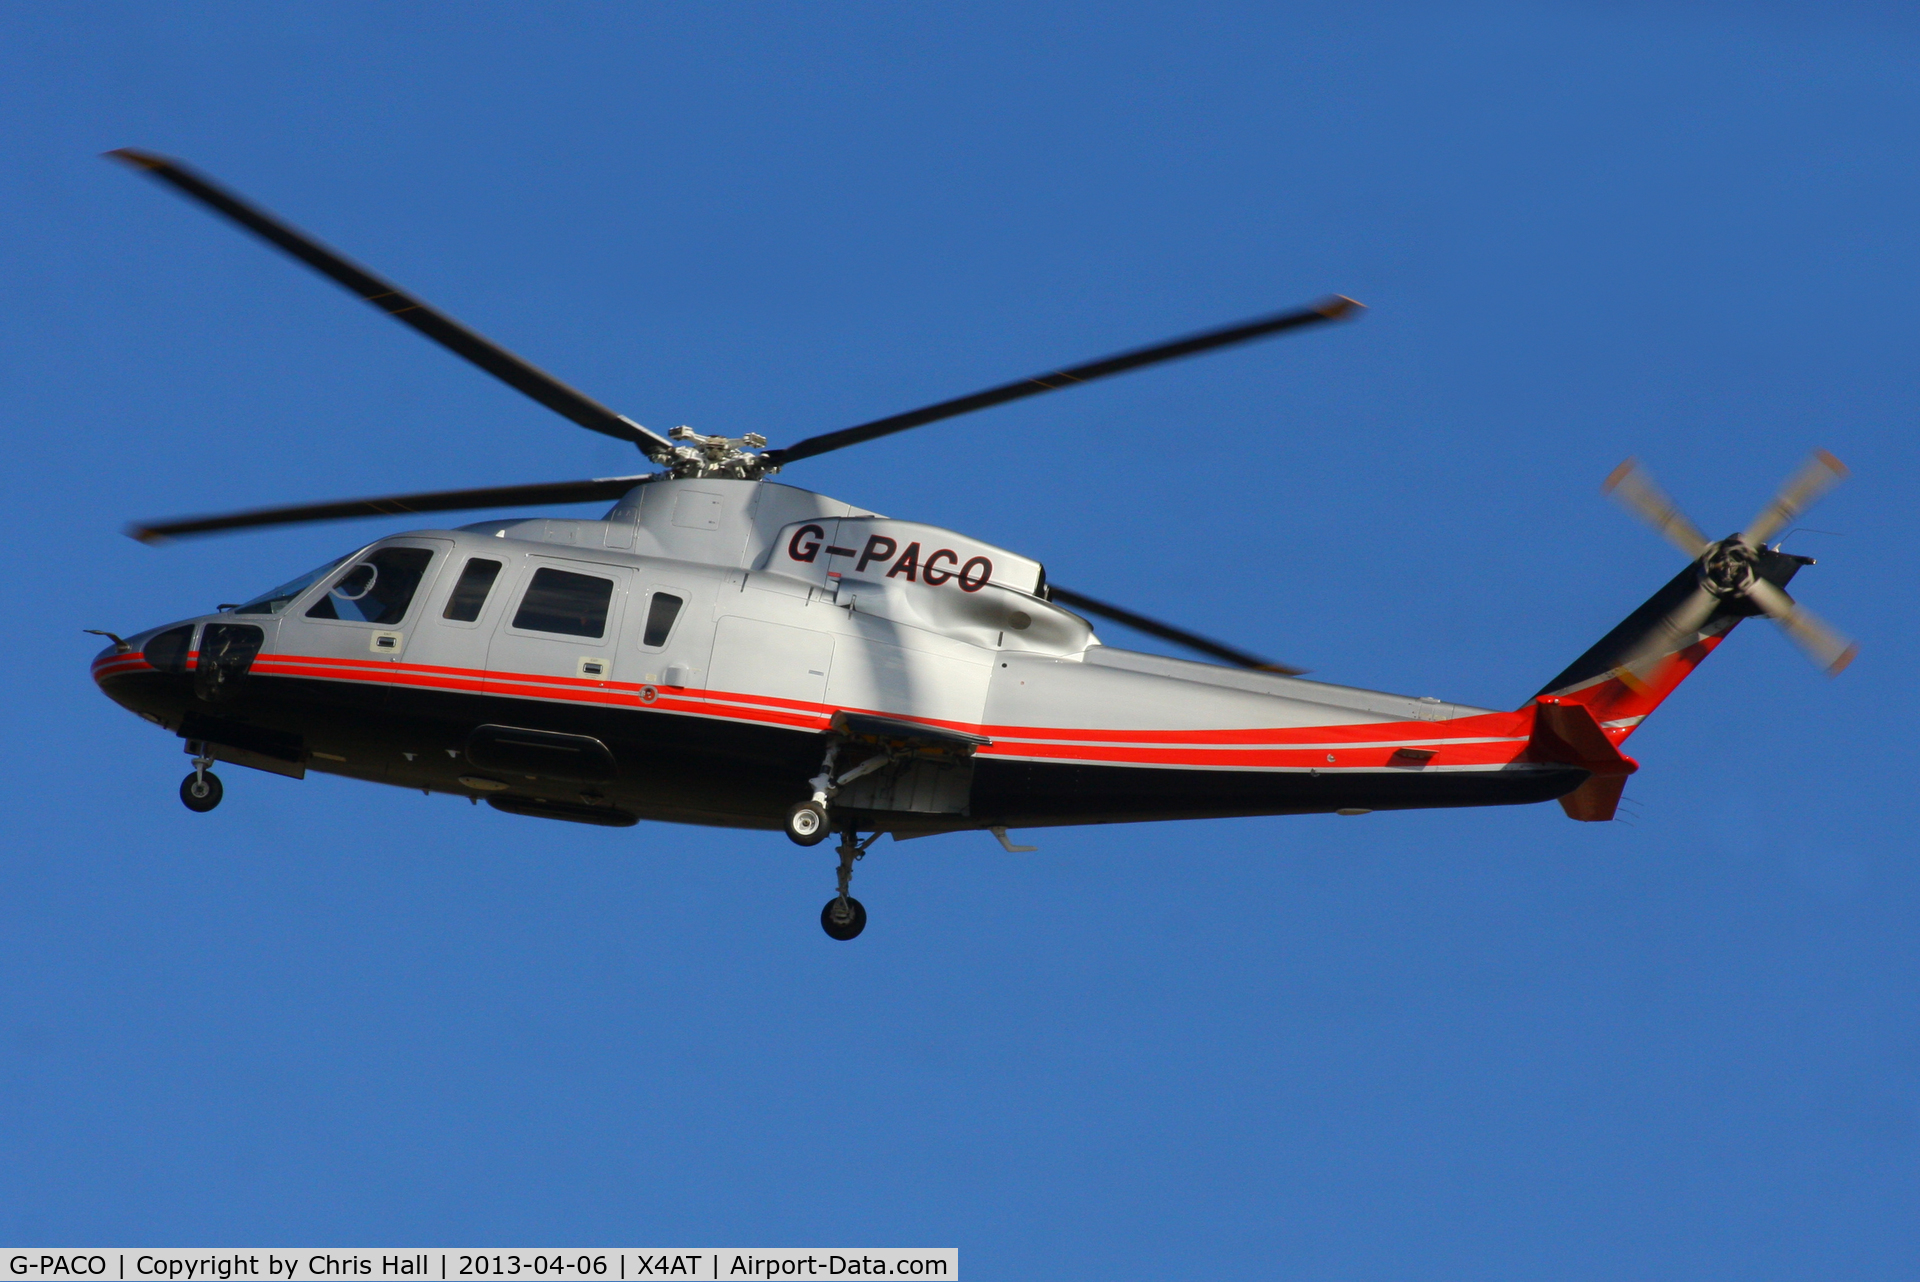 G-PACO, 2009 Sikorsky S-76C C/N 760782, Ferrying racegoers into Aintree for the 2013 Grand National